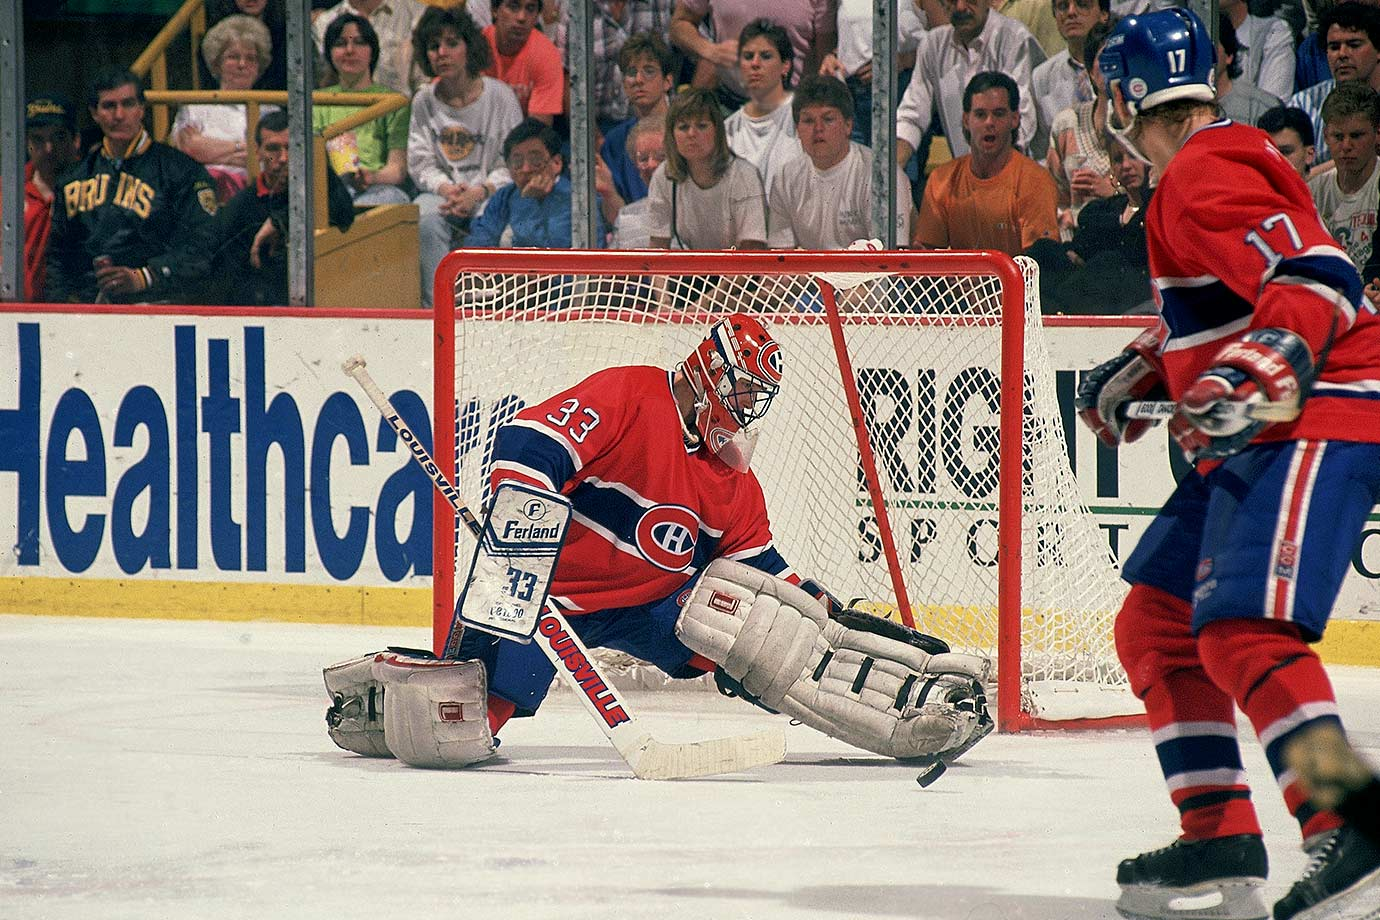 April 27, 1990 — Adams Division Final, Game 5 (Canadiens vs. Bruins)